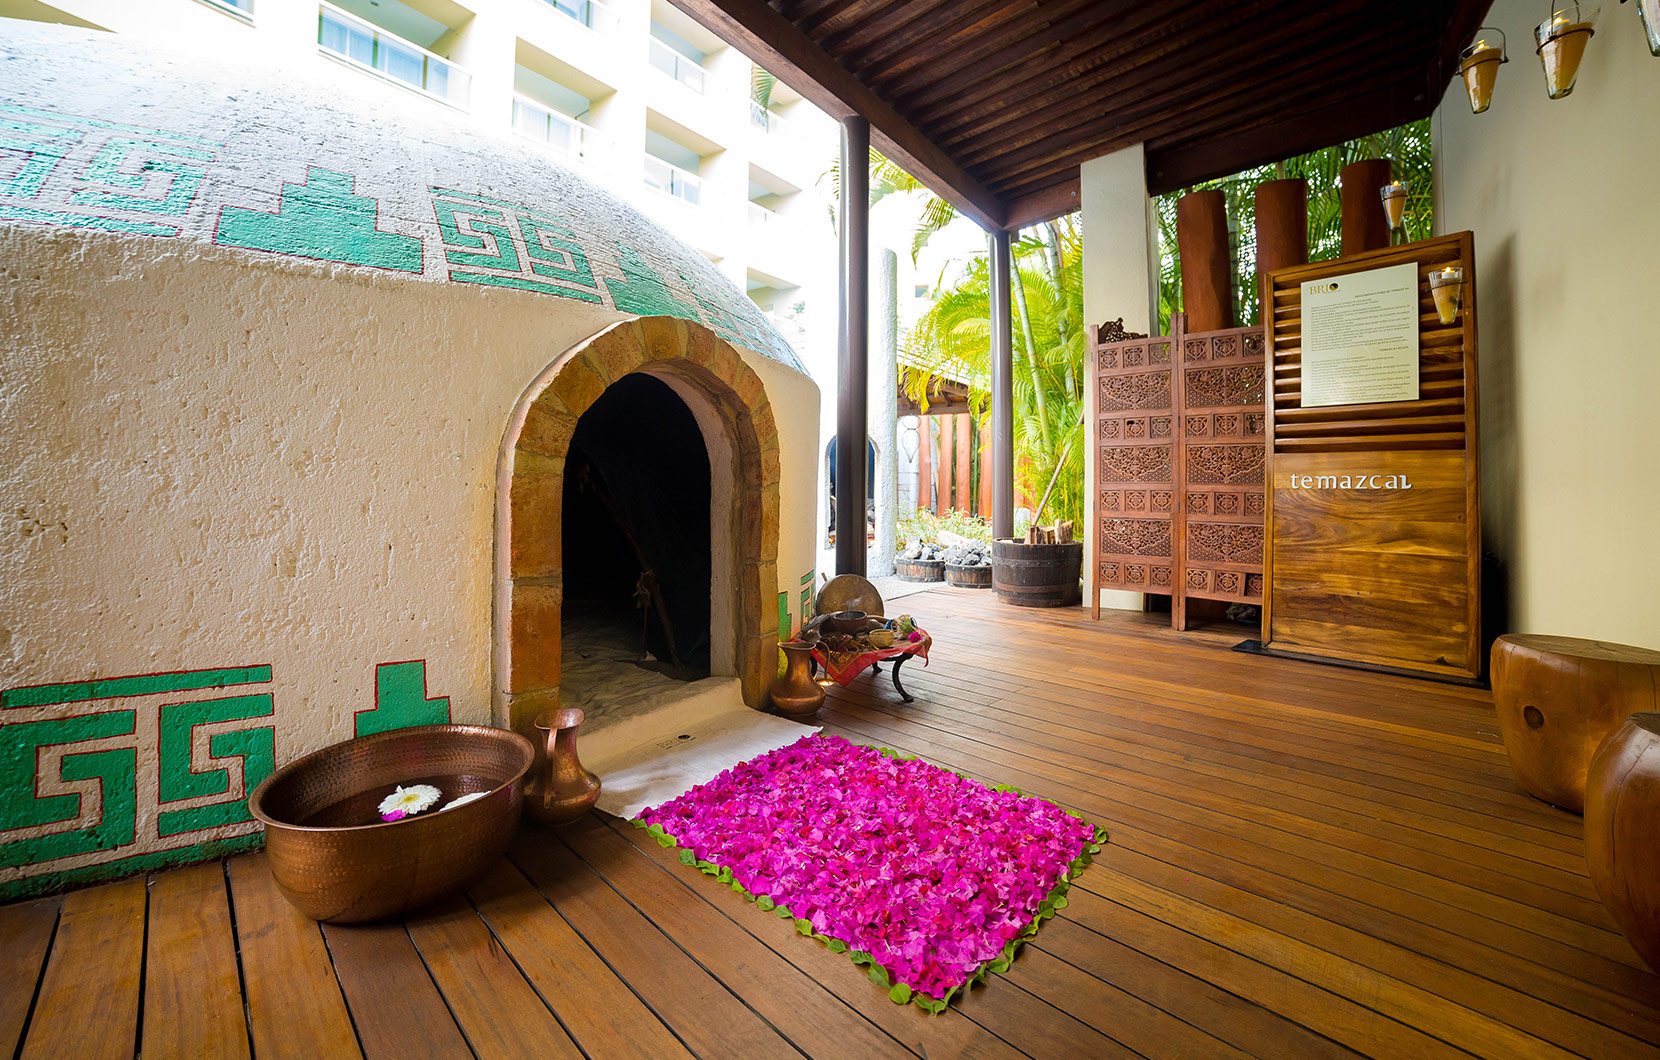 The Temazcal at Vidanta Nuevo Vallarta allows vacationers to experience traditions of authentic ancient Mexico.